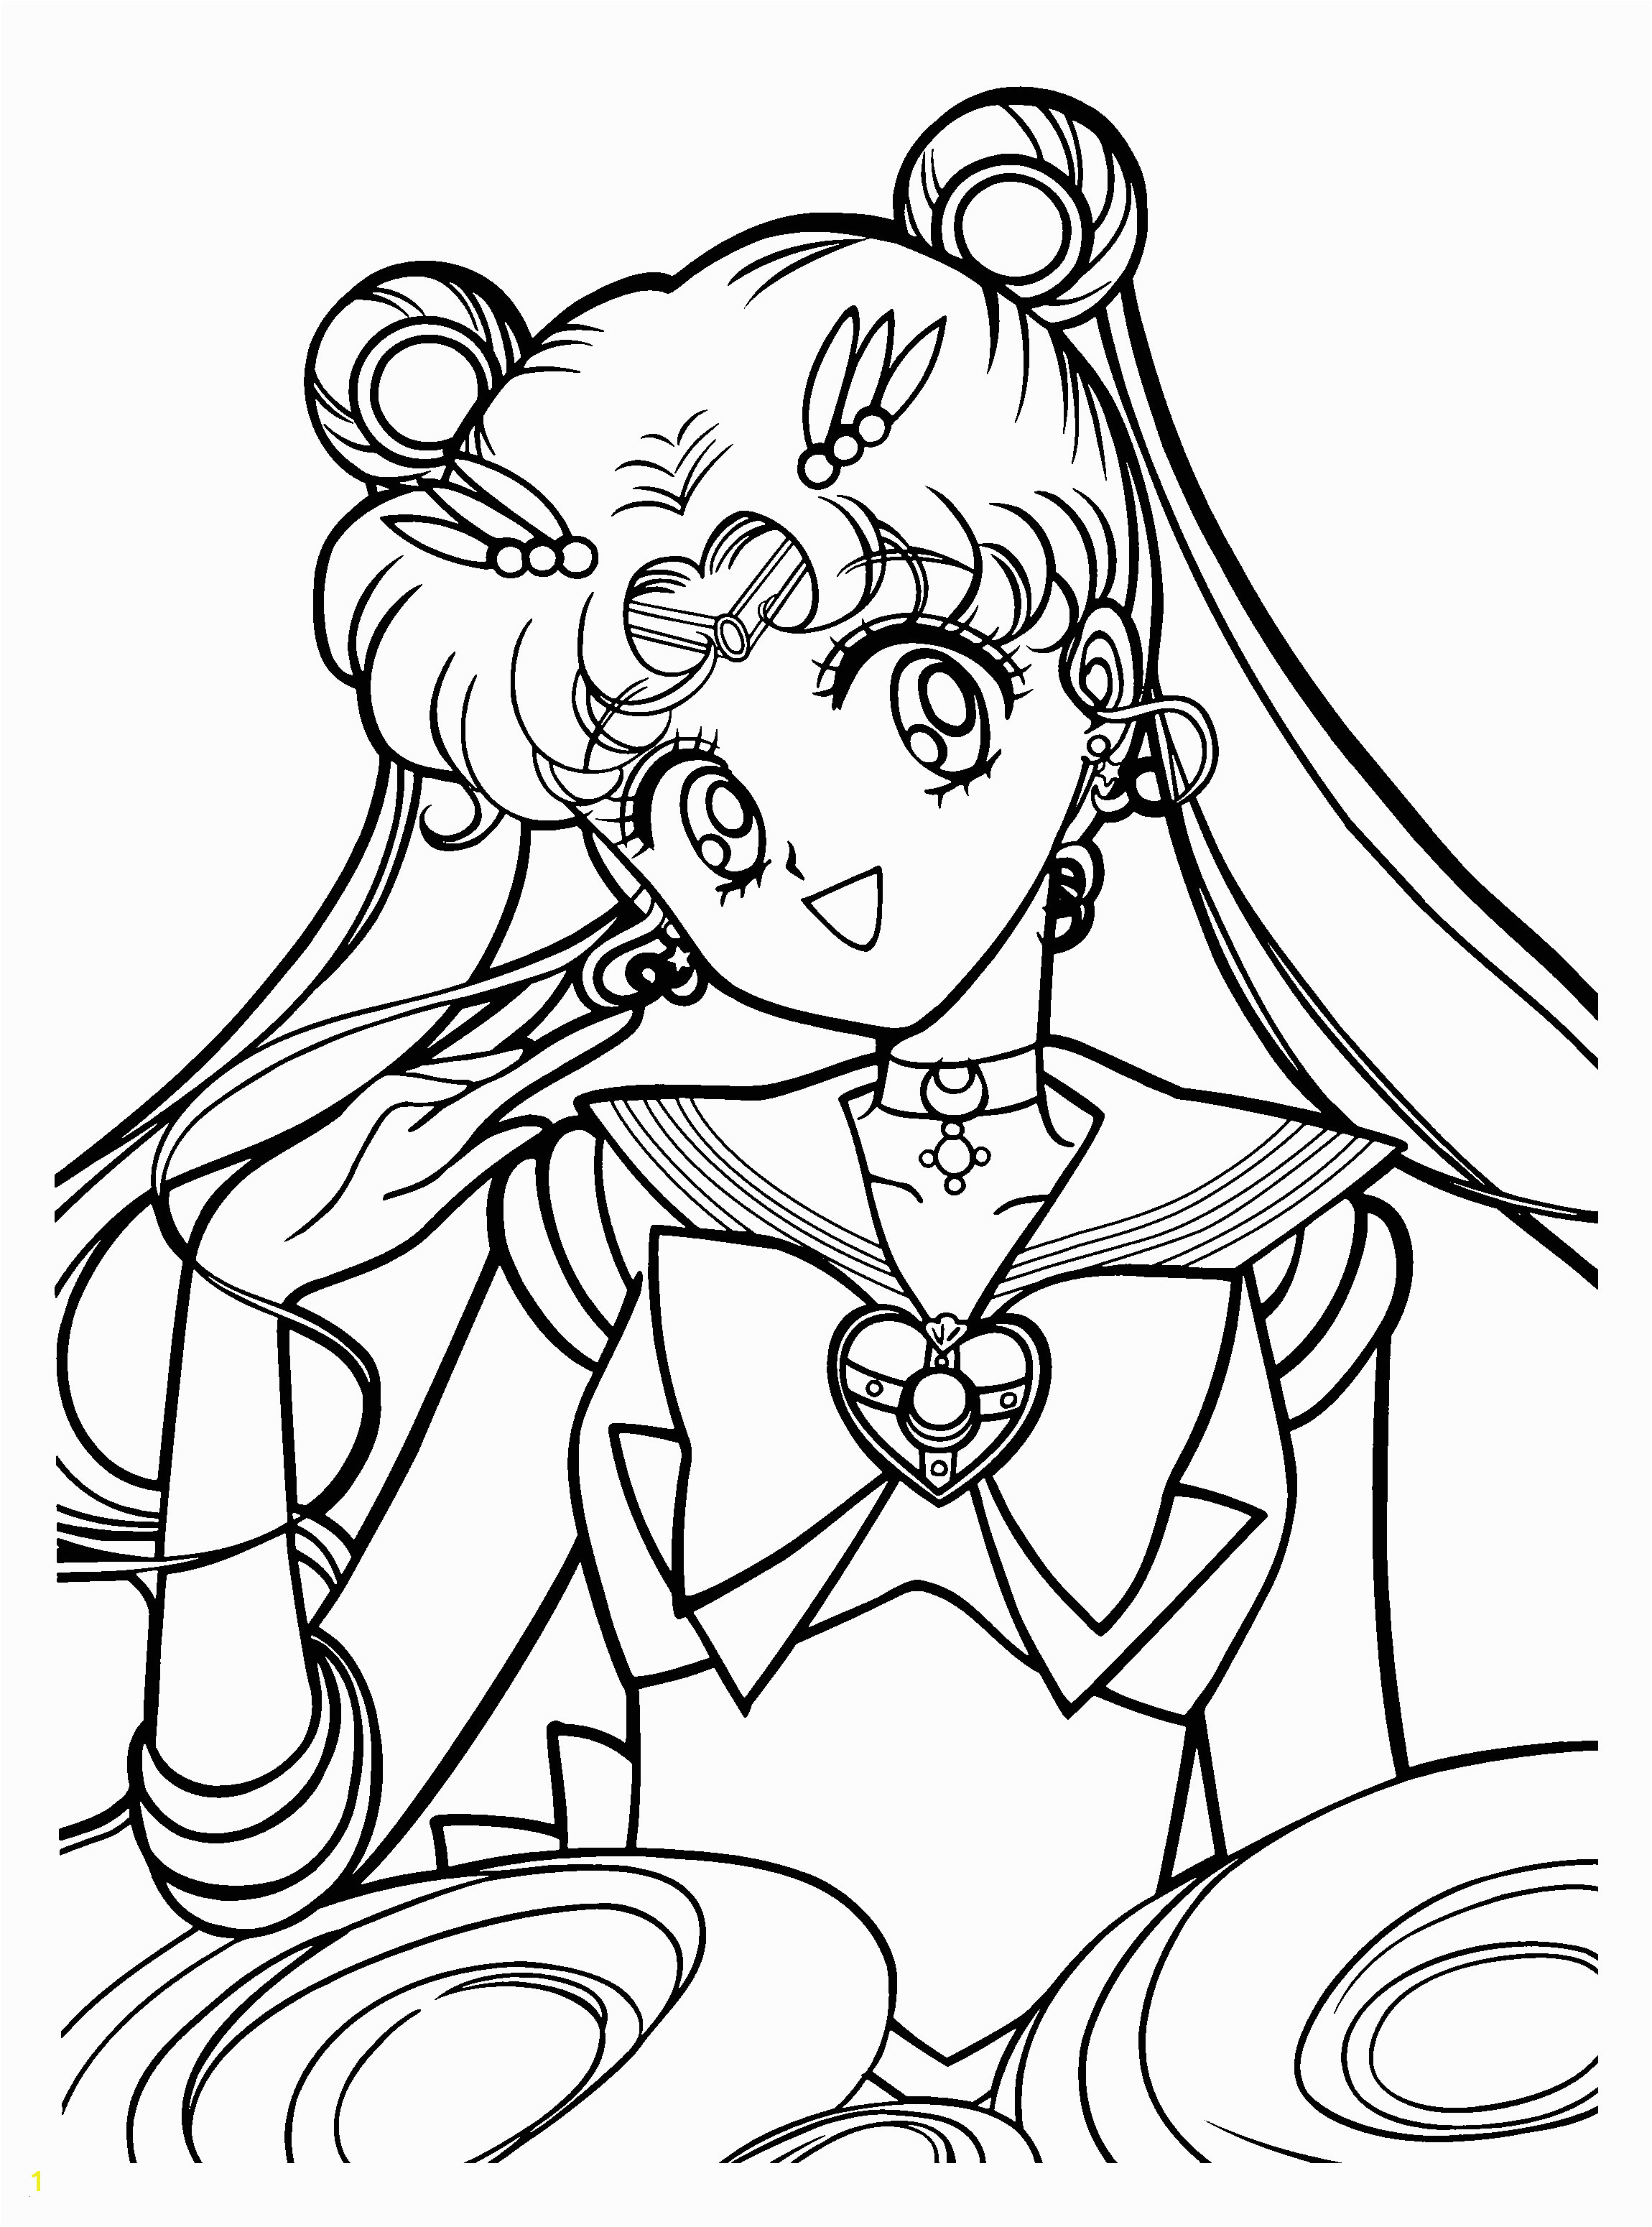 Sailor Mini Moon Coloring Pages Sailor Moon Coloring Pages attractive Erfreut Sailor Moon Farbseiten